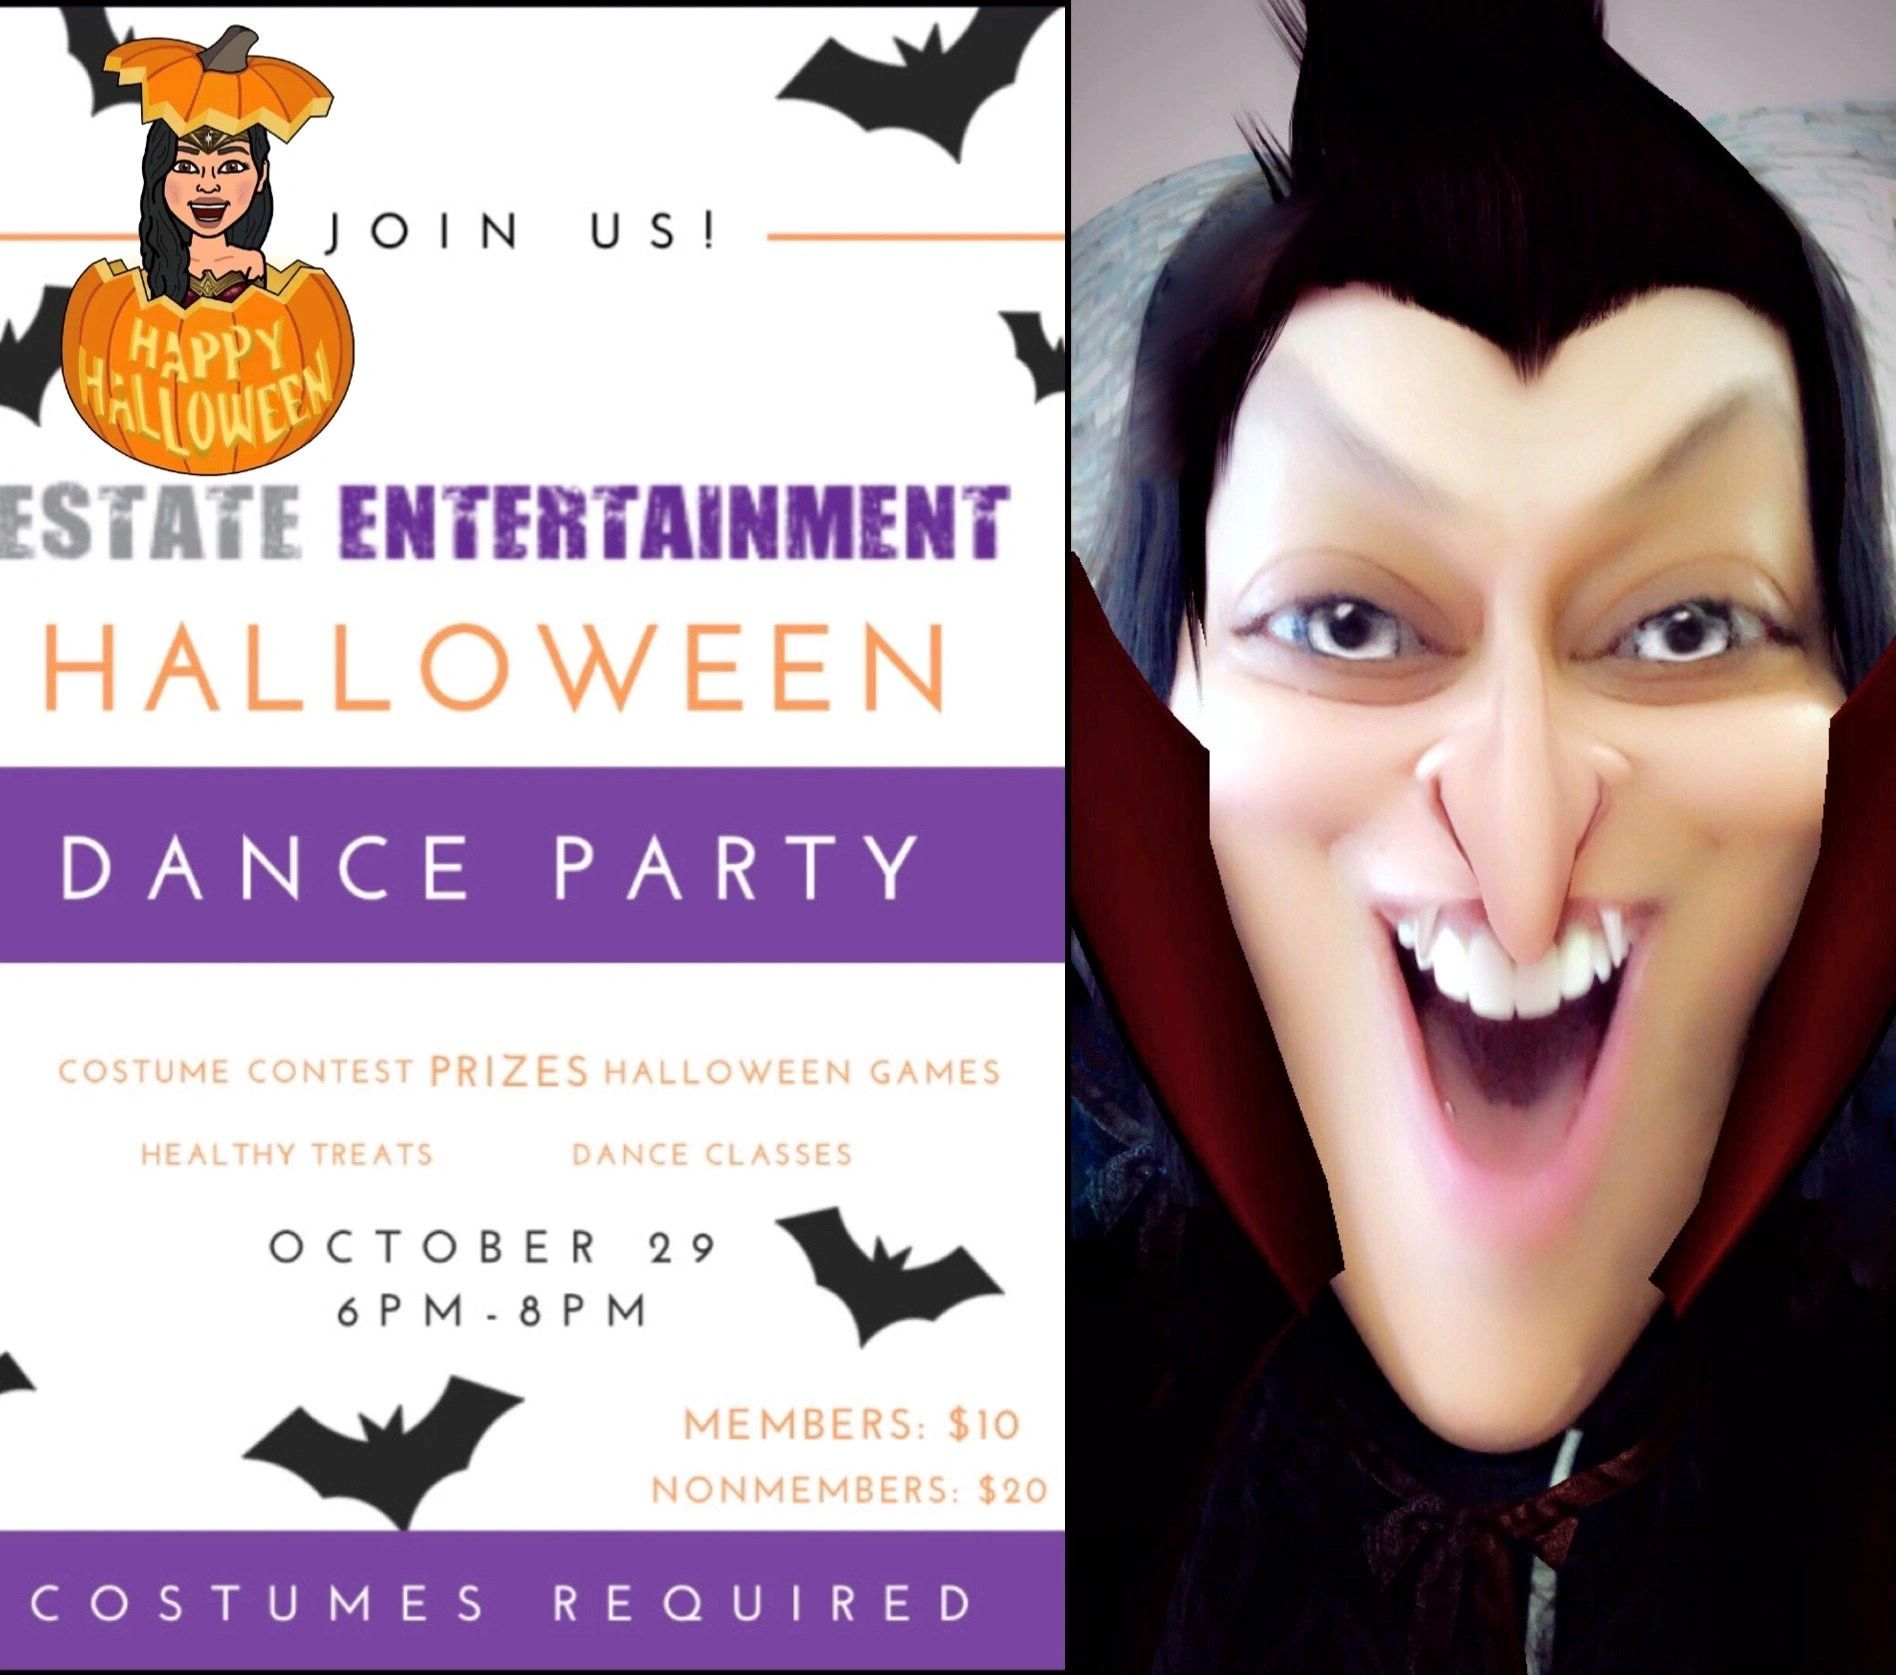 Estate Entertainment Halloween Party Invitation